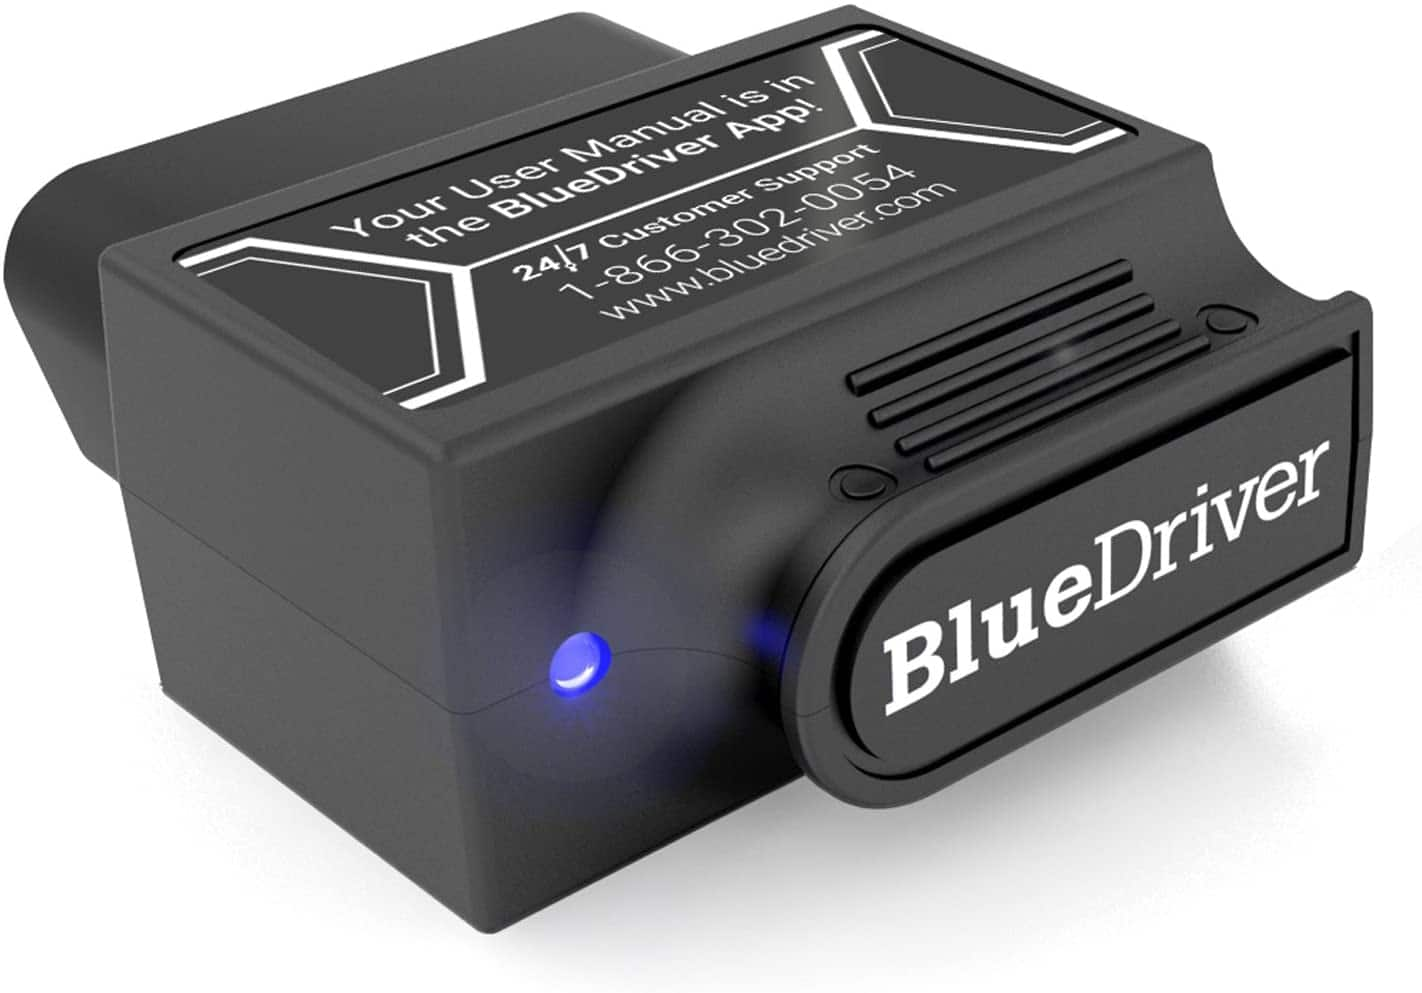 BlueDriver Bluetooth Pro OBDII Scan Tool for iPhone & Android $69.95 @ Amazon